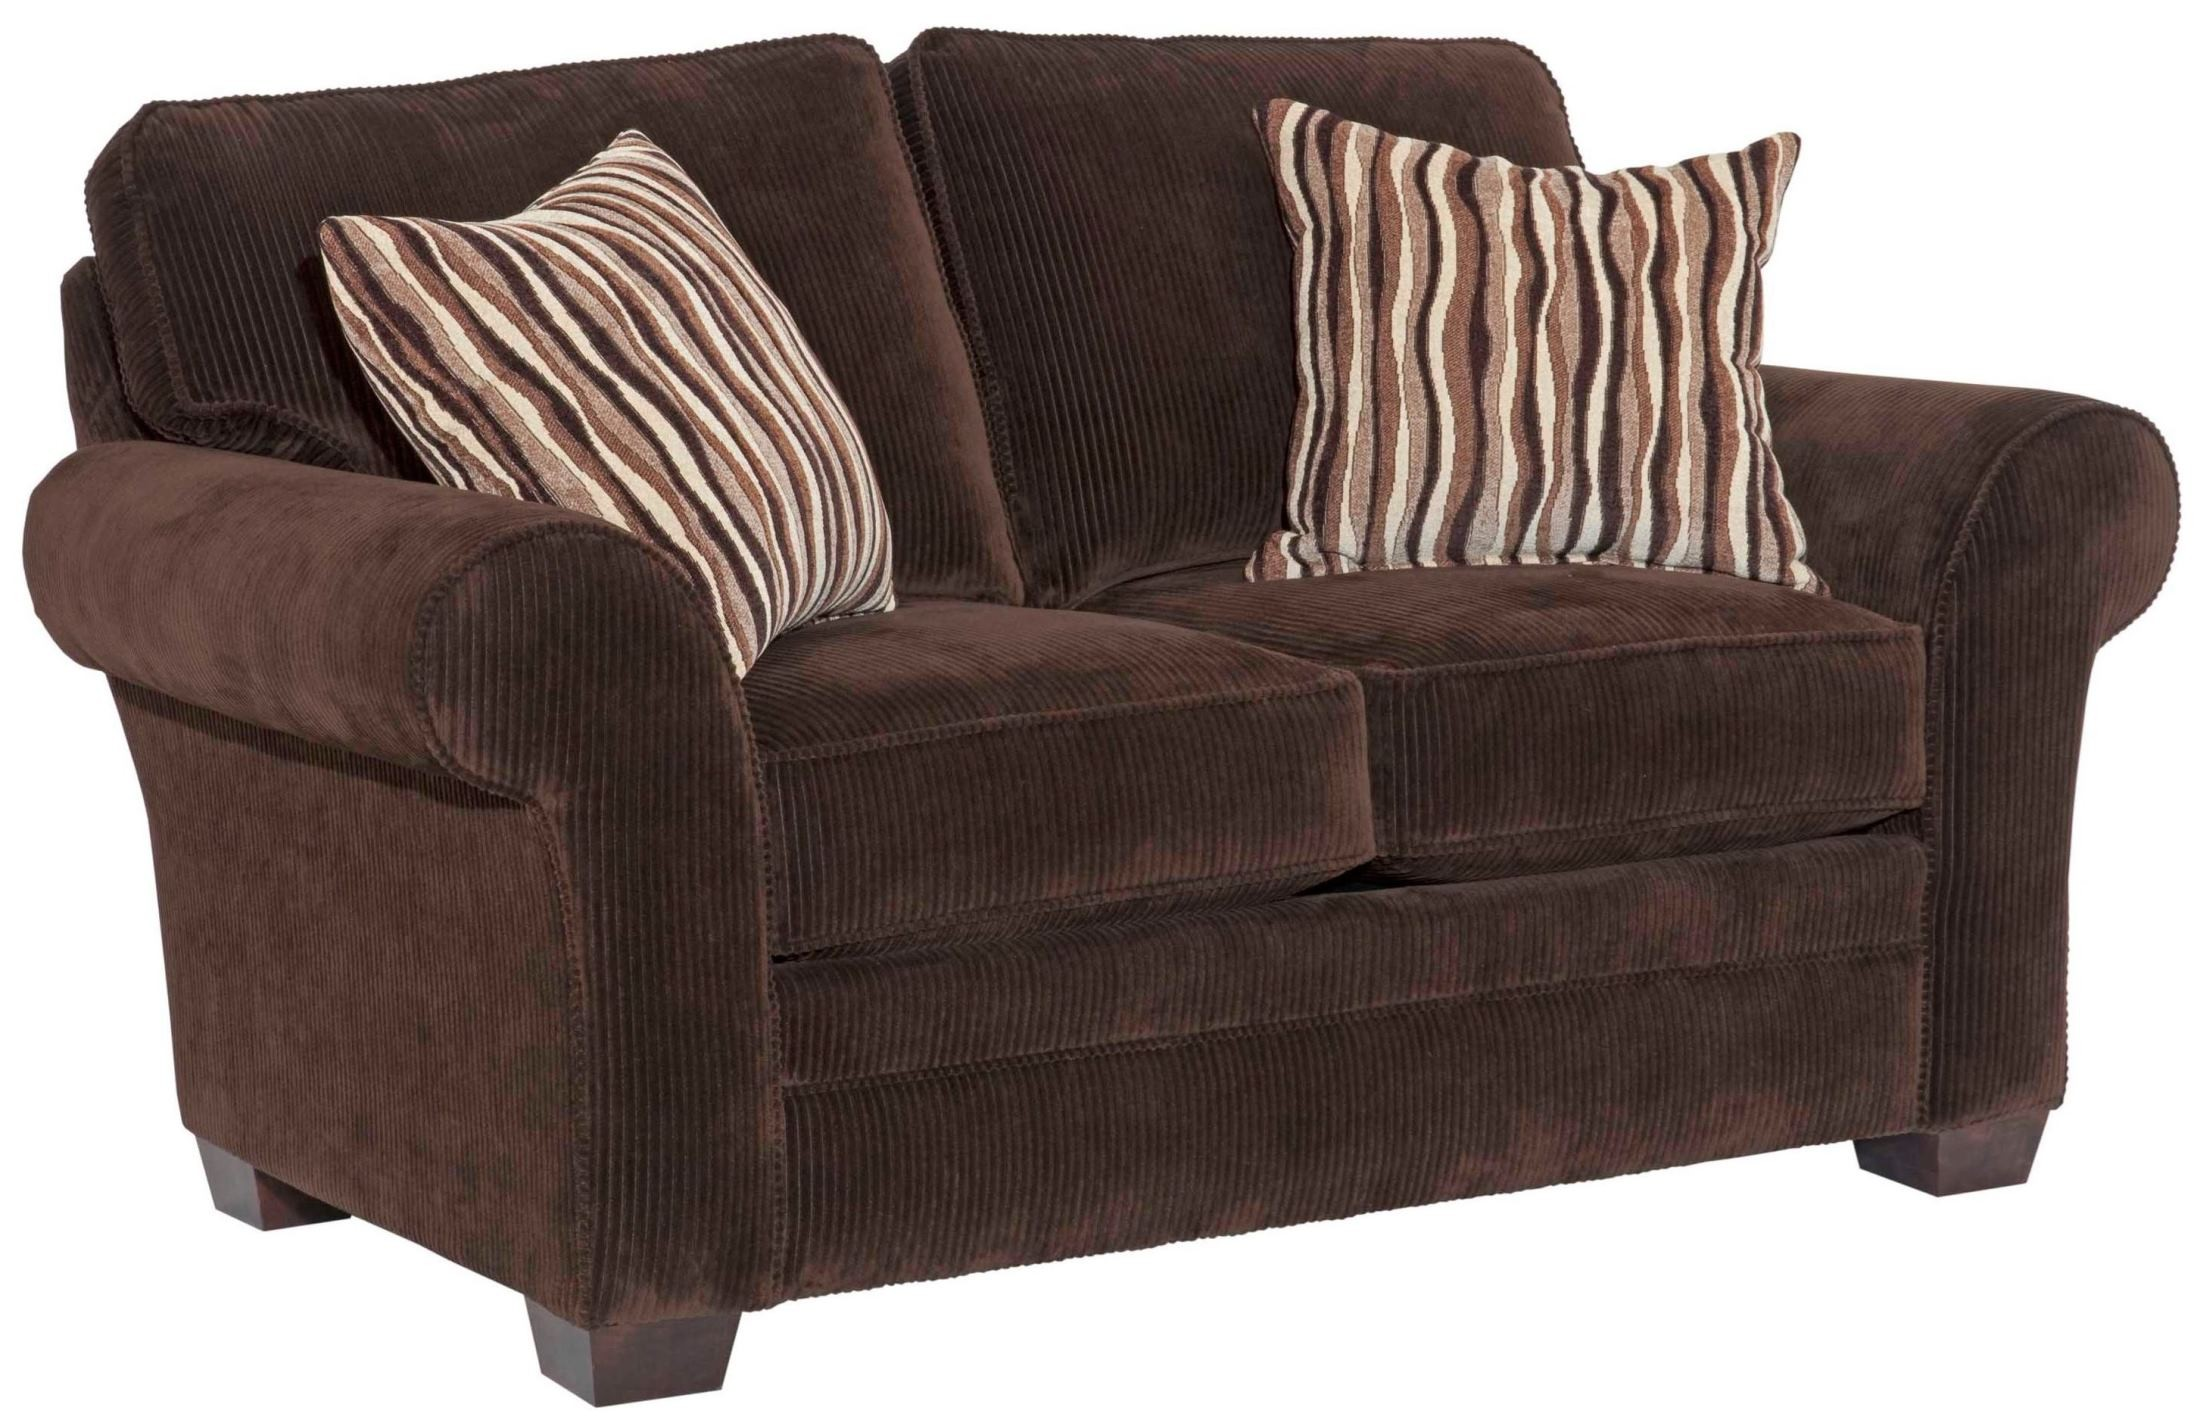 Zachary Affinity Microfiber Loveseat From Broyhill 7902 1q 7973 87 Coleman Furniture